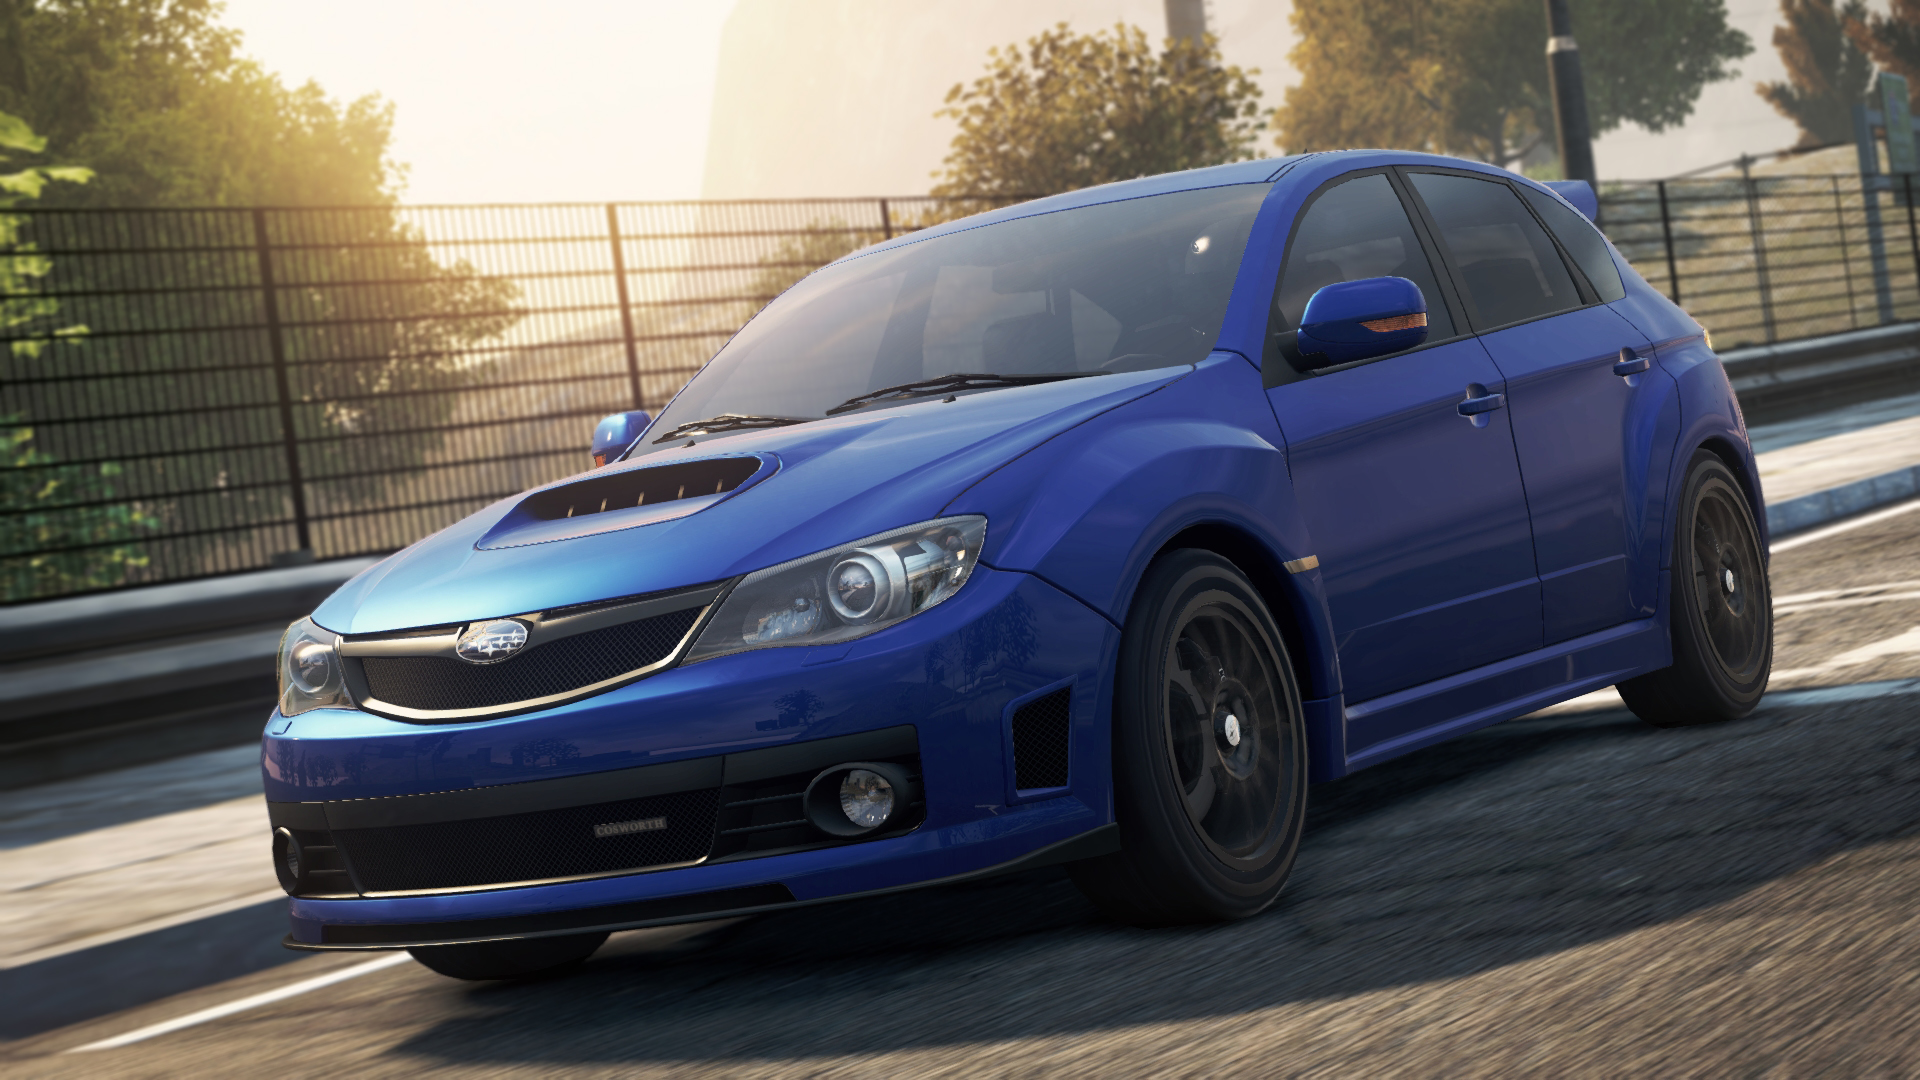 subaru cosworth impreza sti cs400 at the need for speed wiki need for speed series information. Black Bedroom Furniture Sets. Home Design Ideas